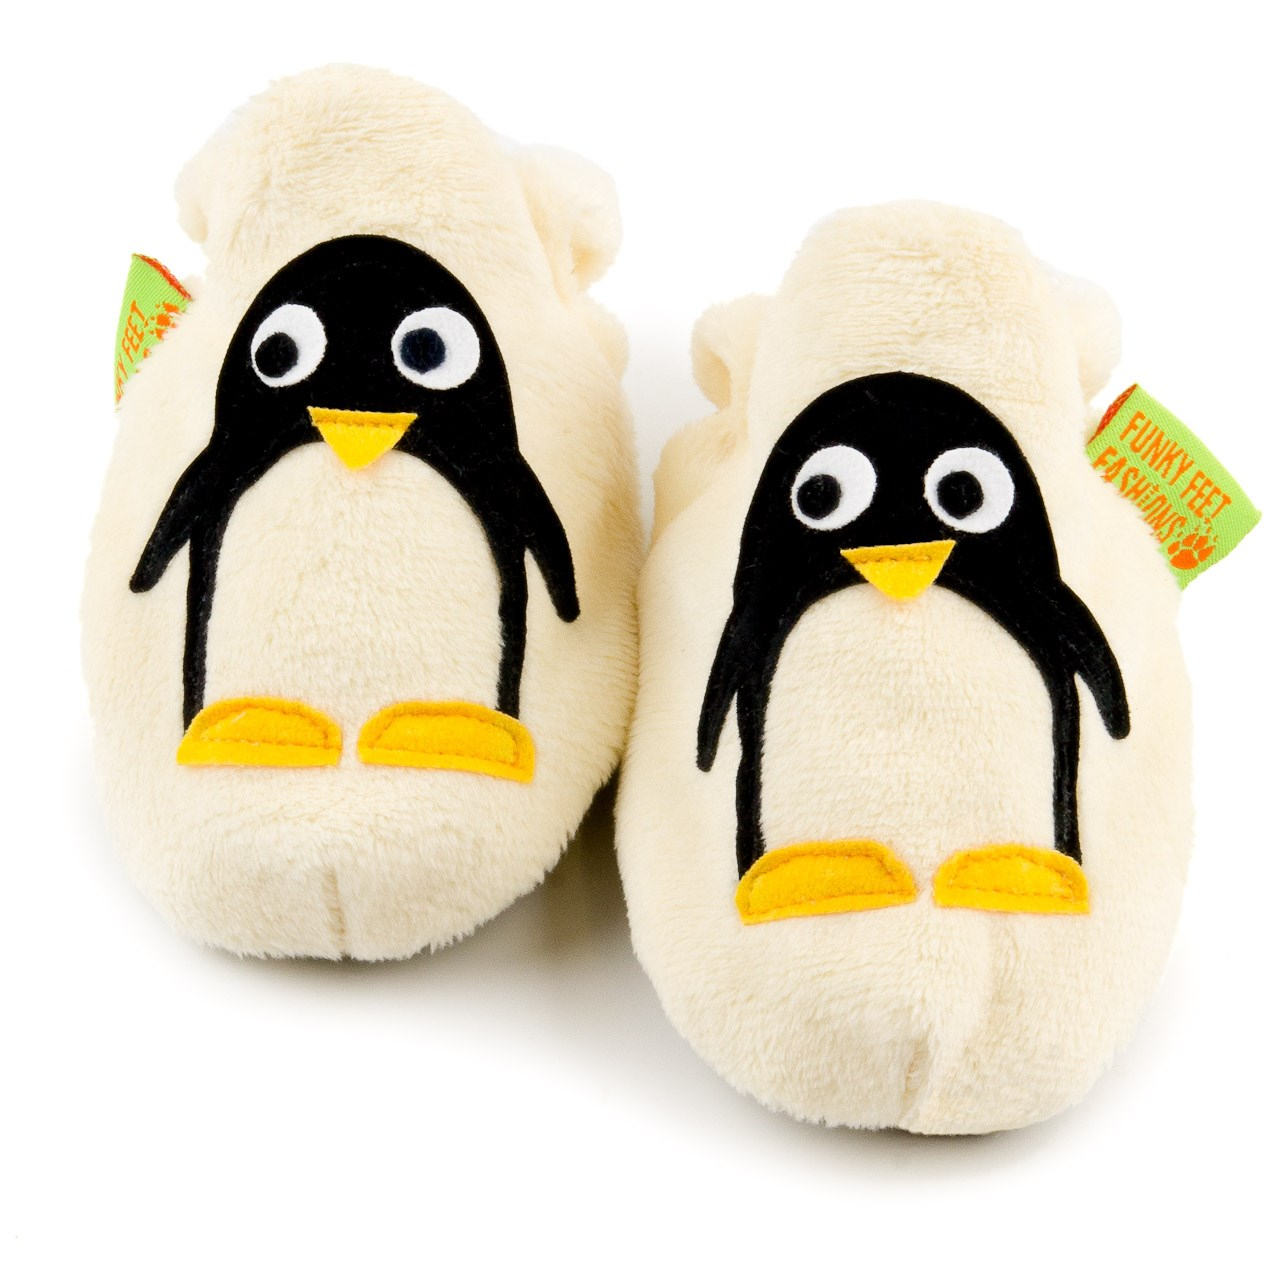 Soft Baby Shoes - Penguin